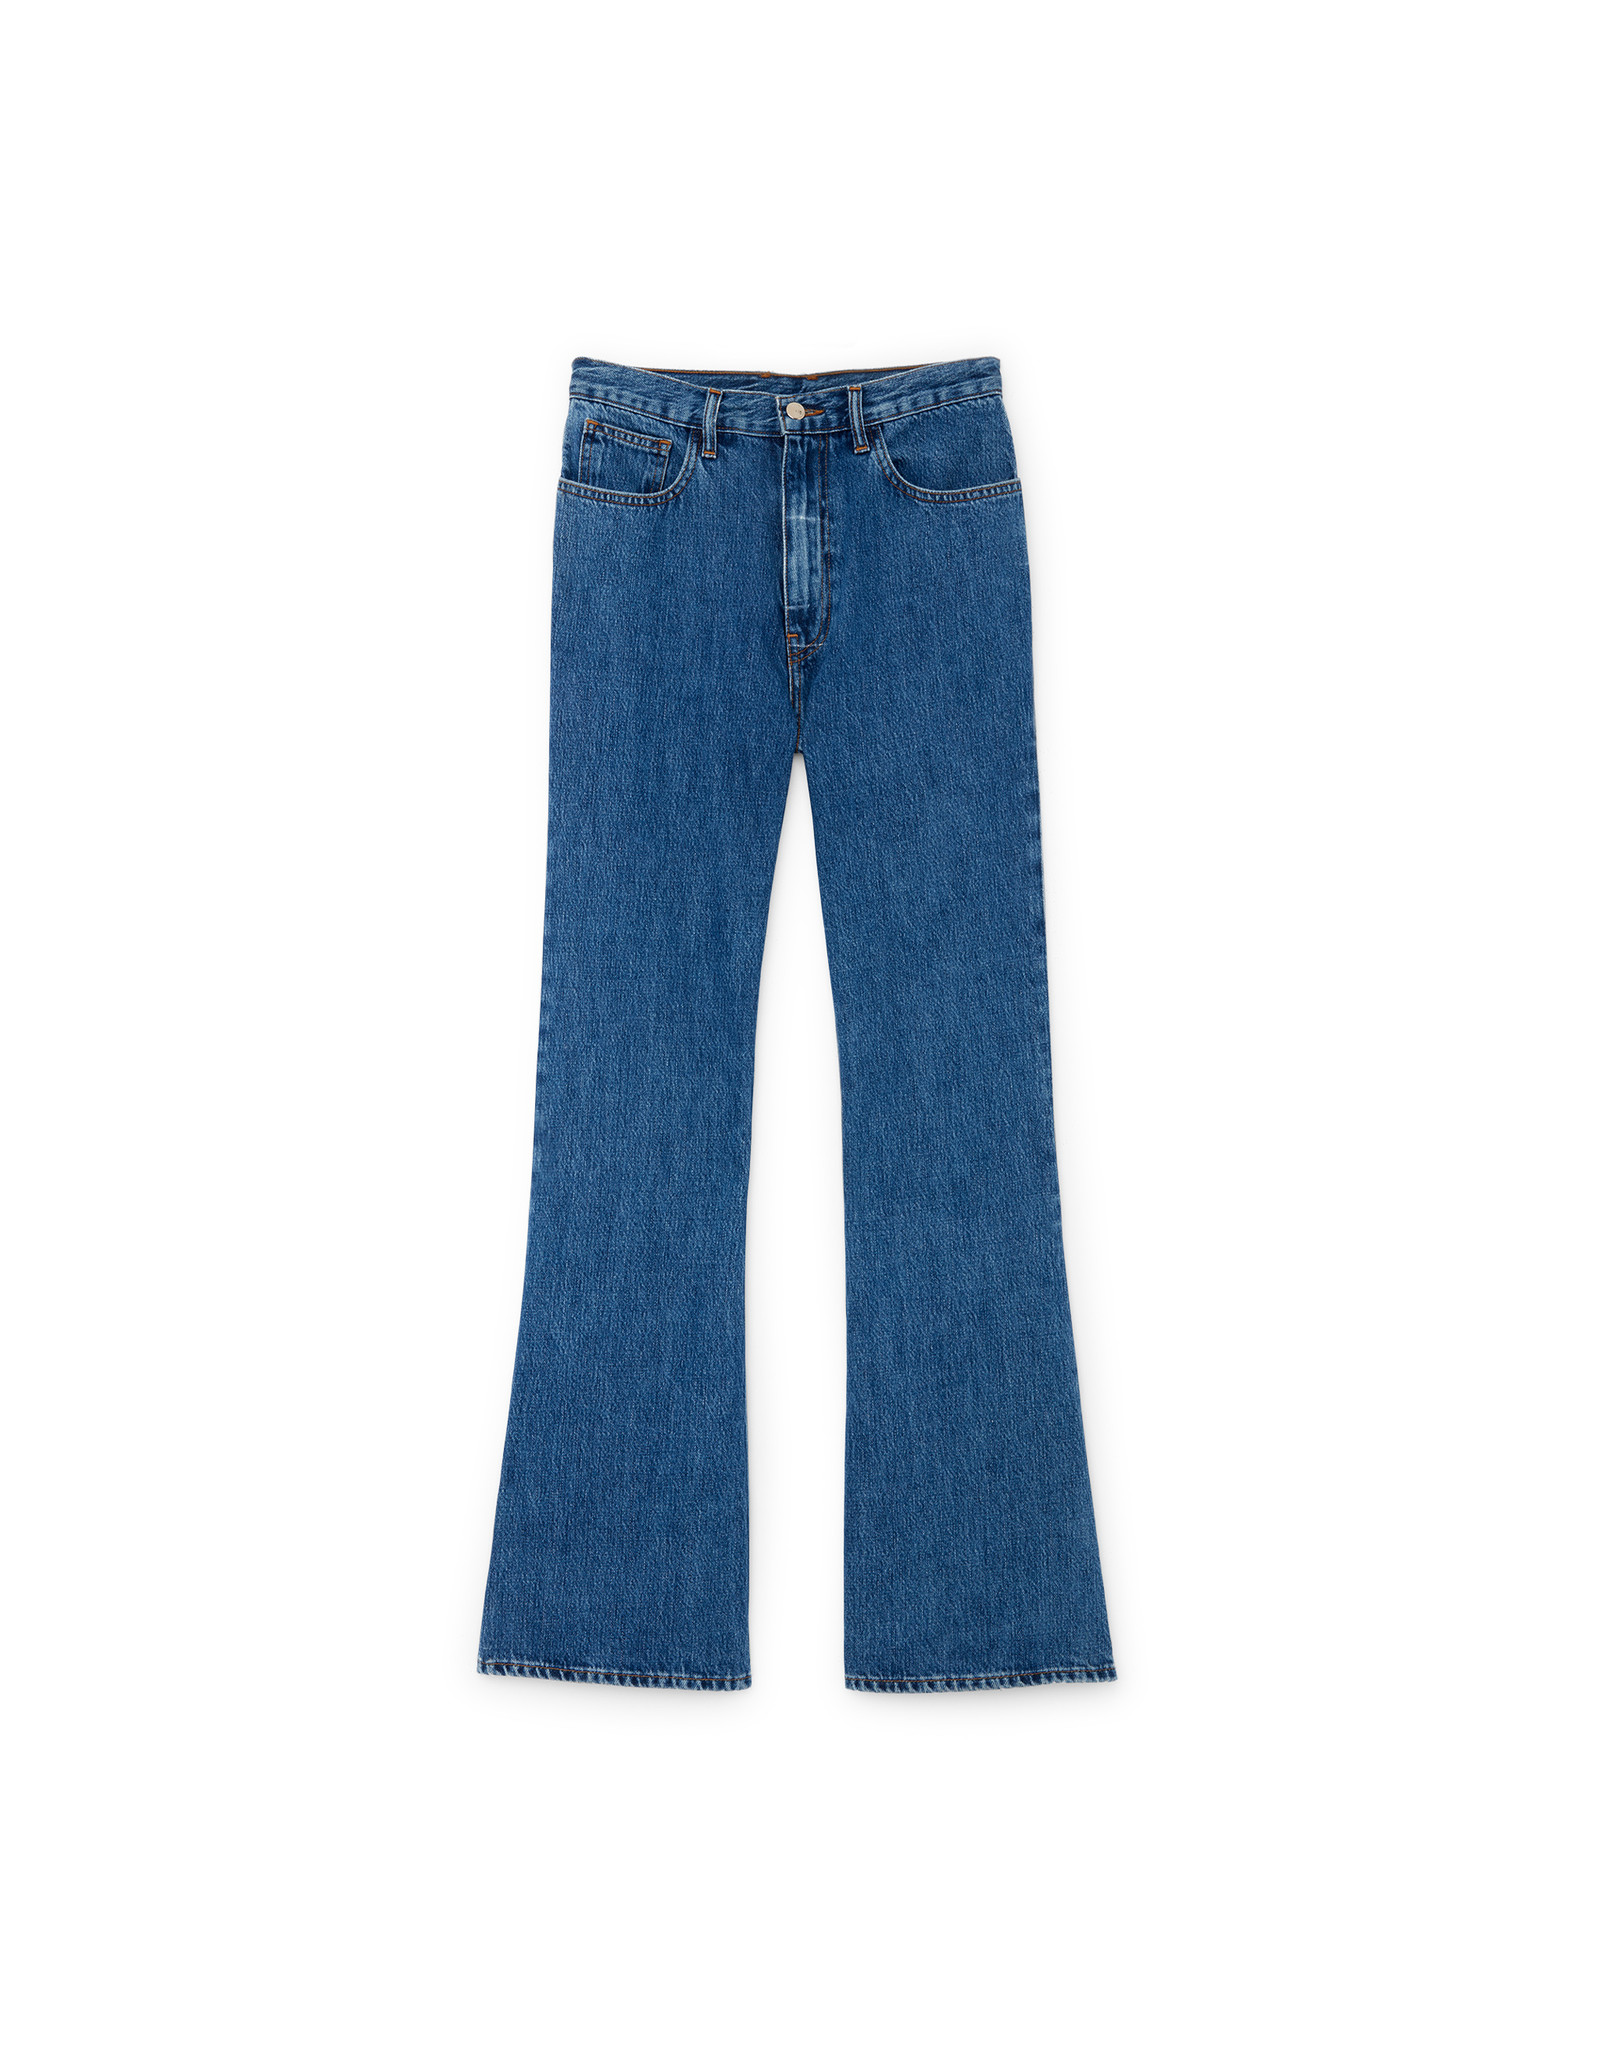 G. Label G. Label Griffin Bootcut Jeans (Color: Medium Blue Wash, Size: 26)